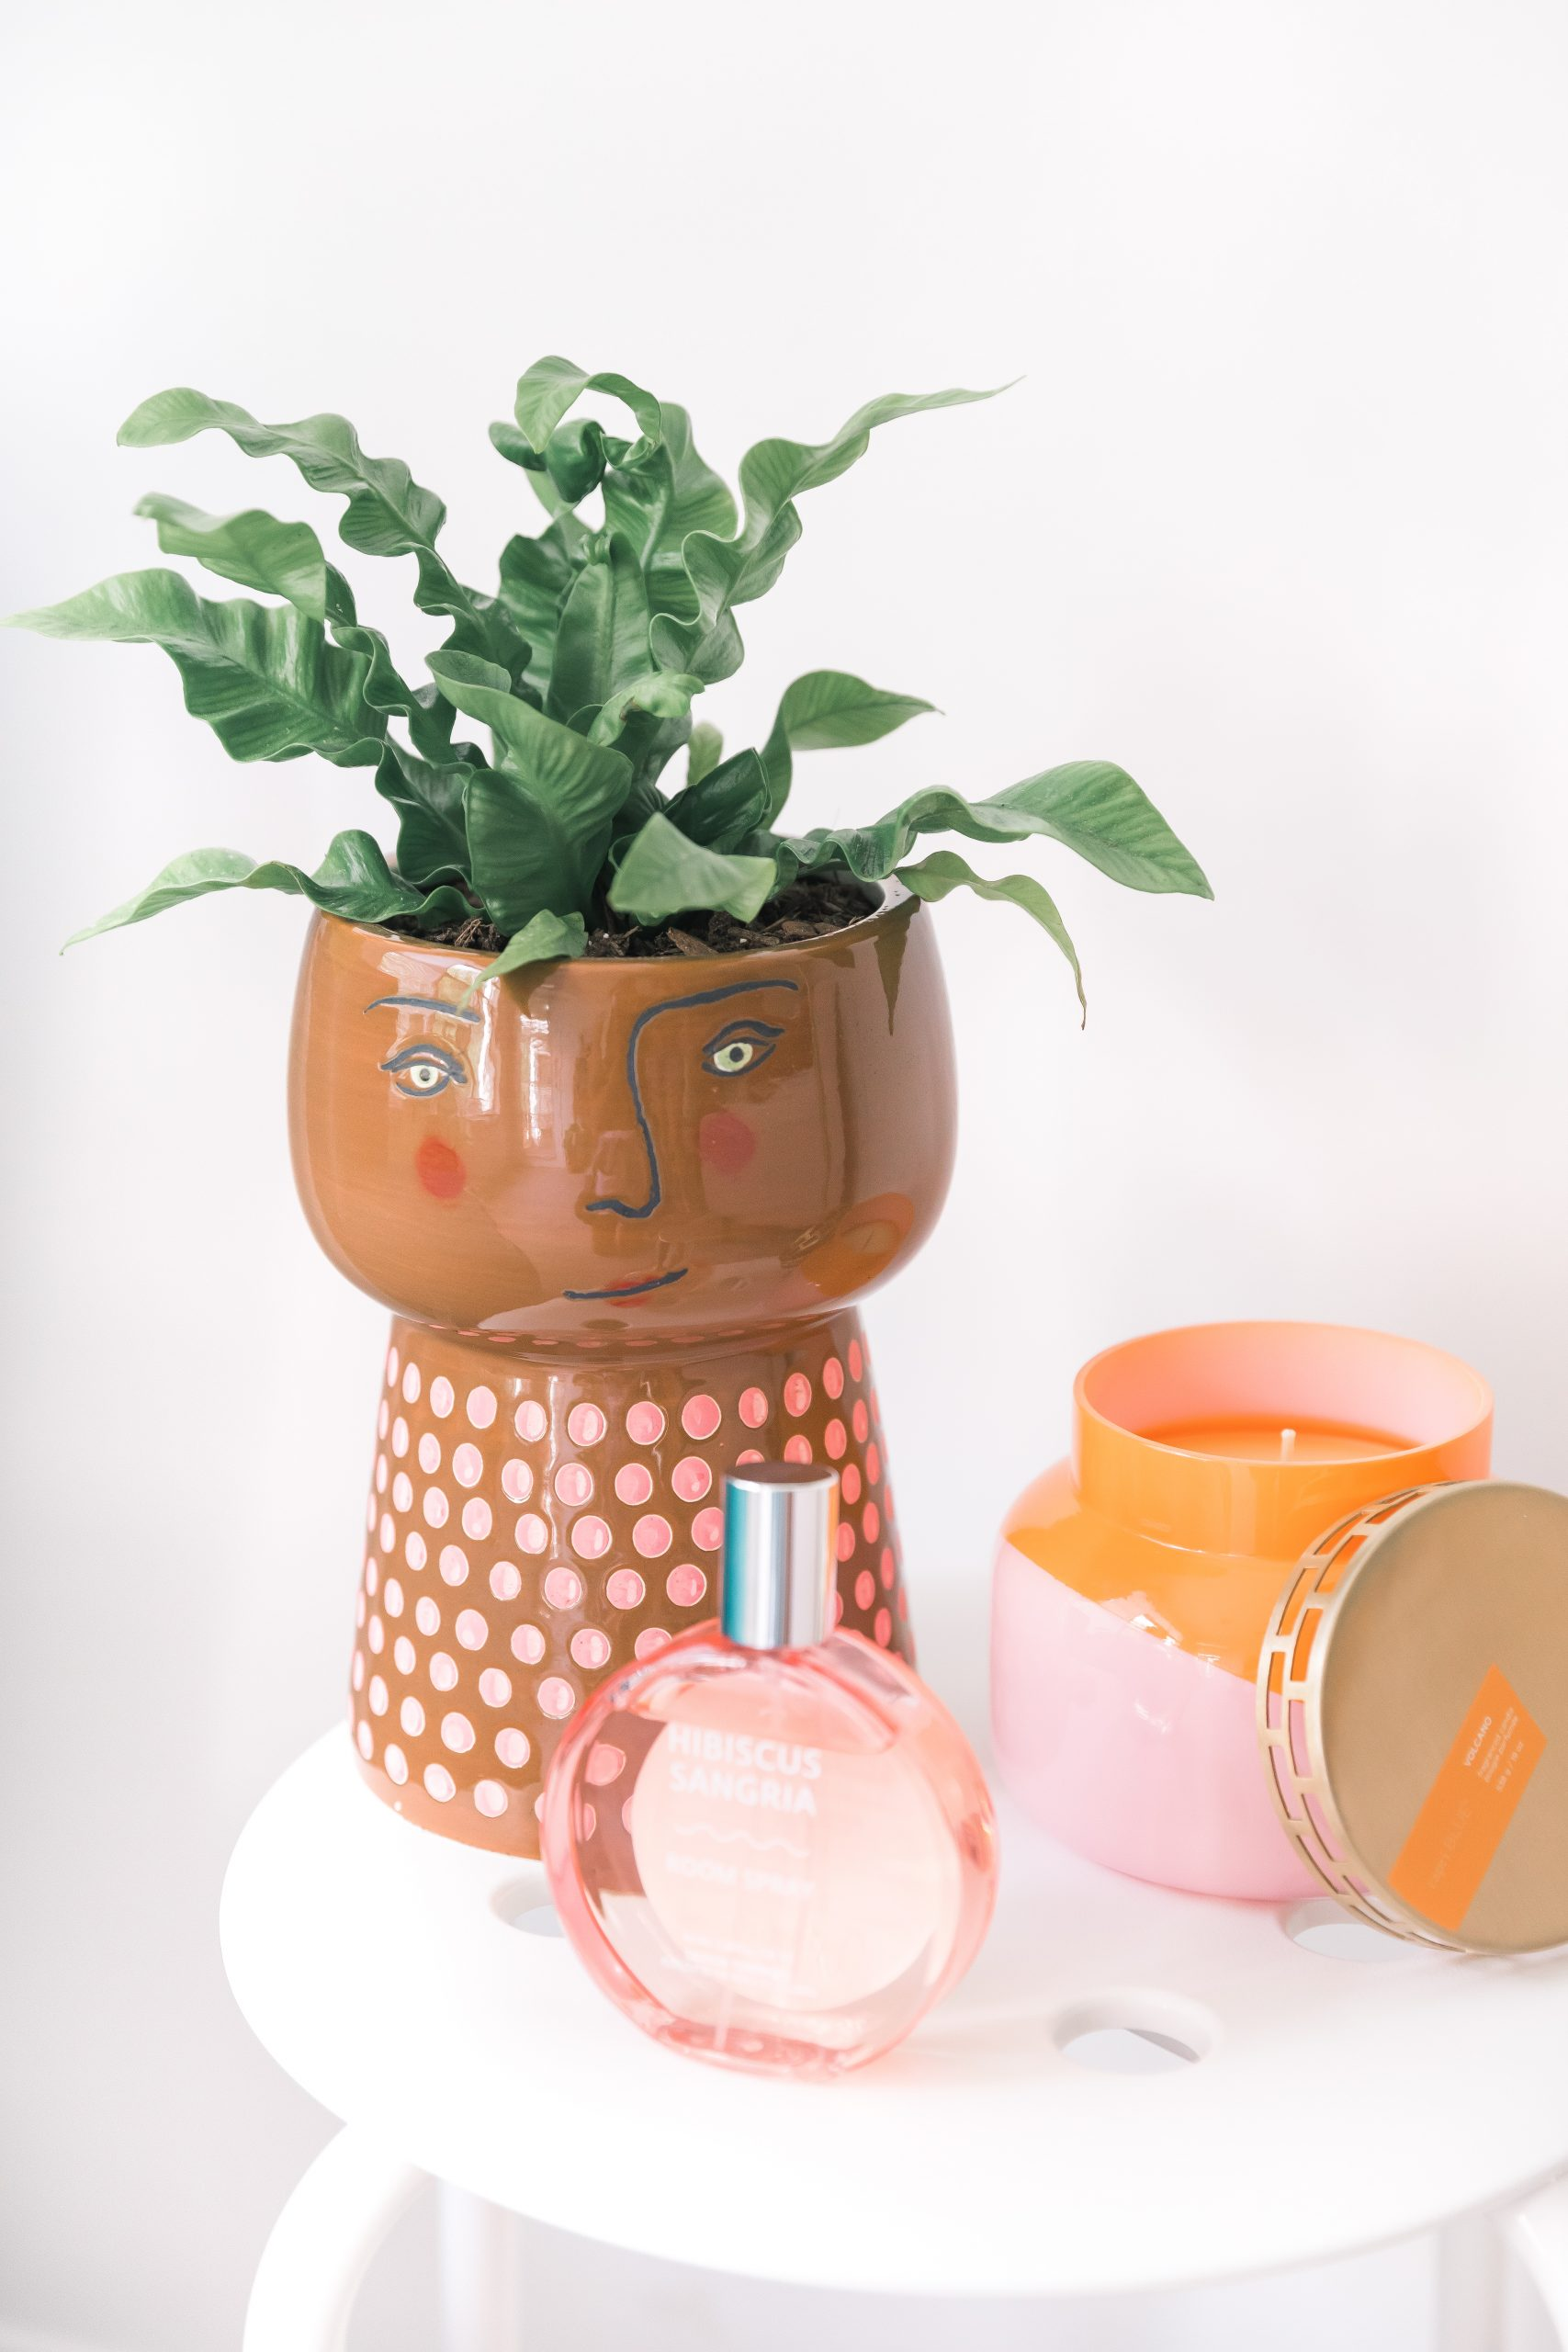 curly plant and planter